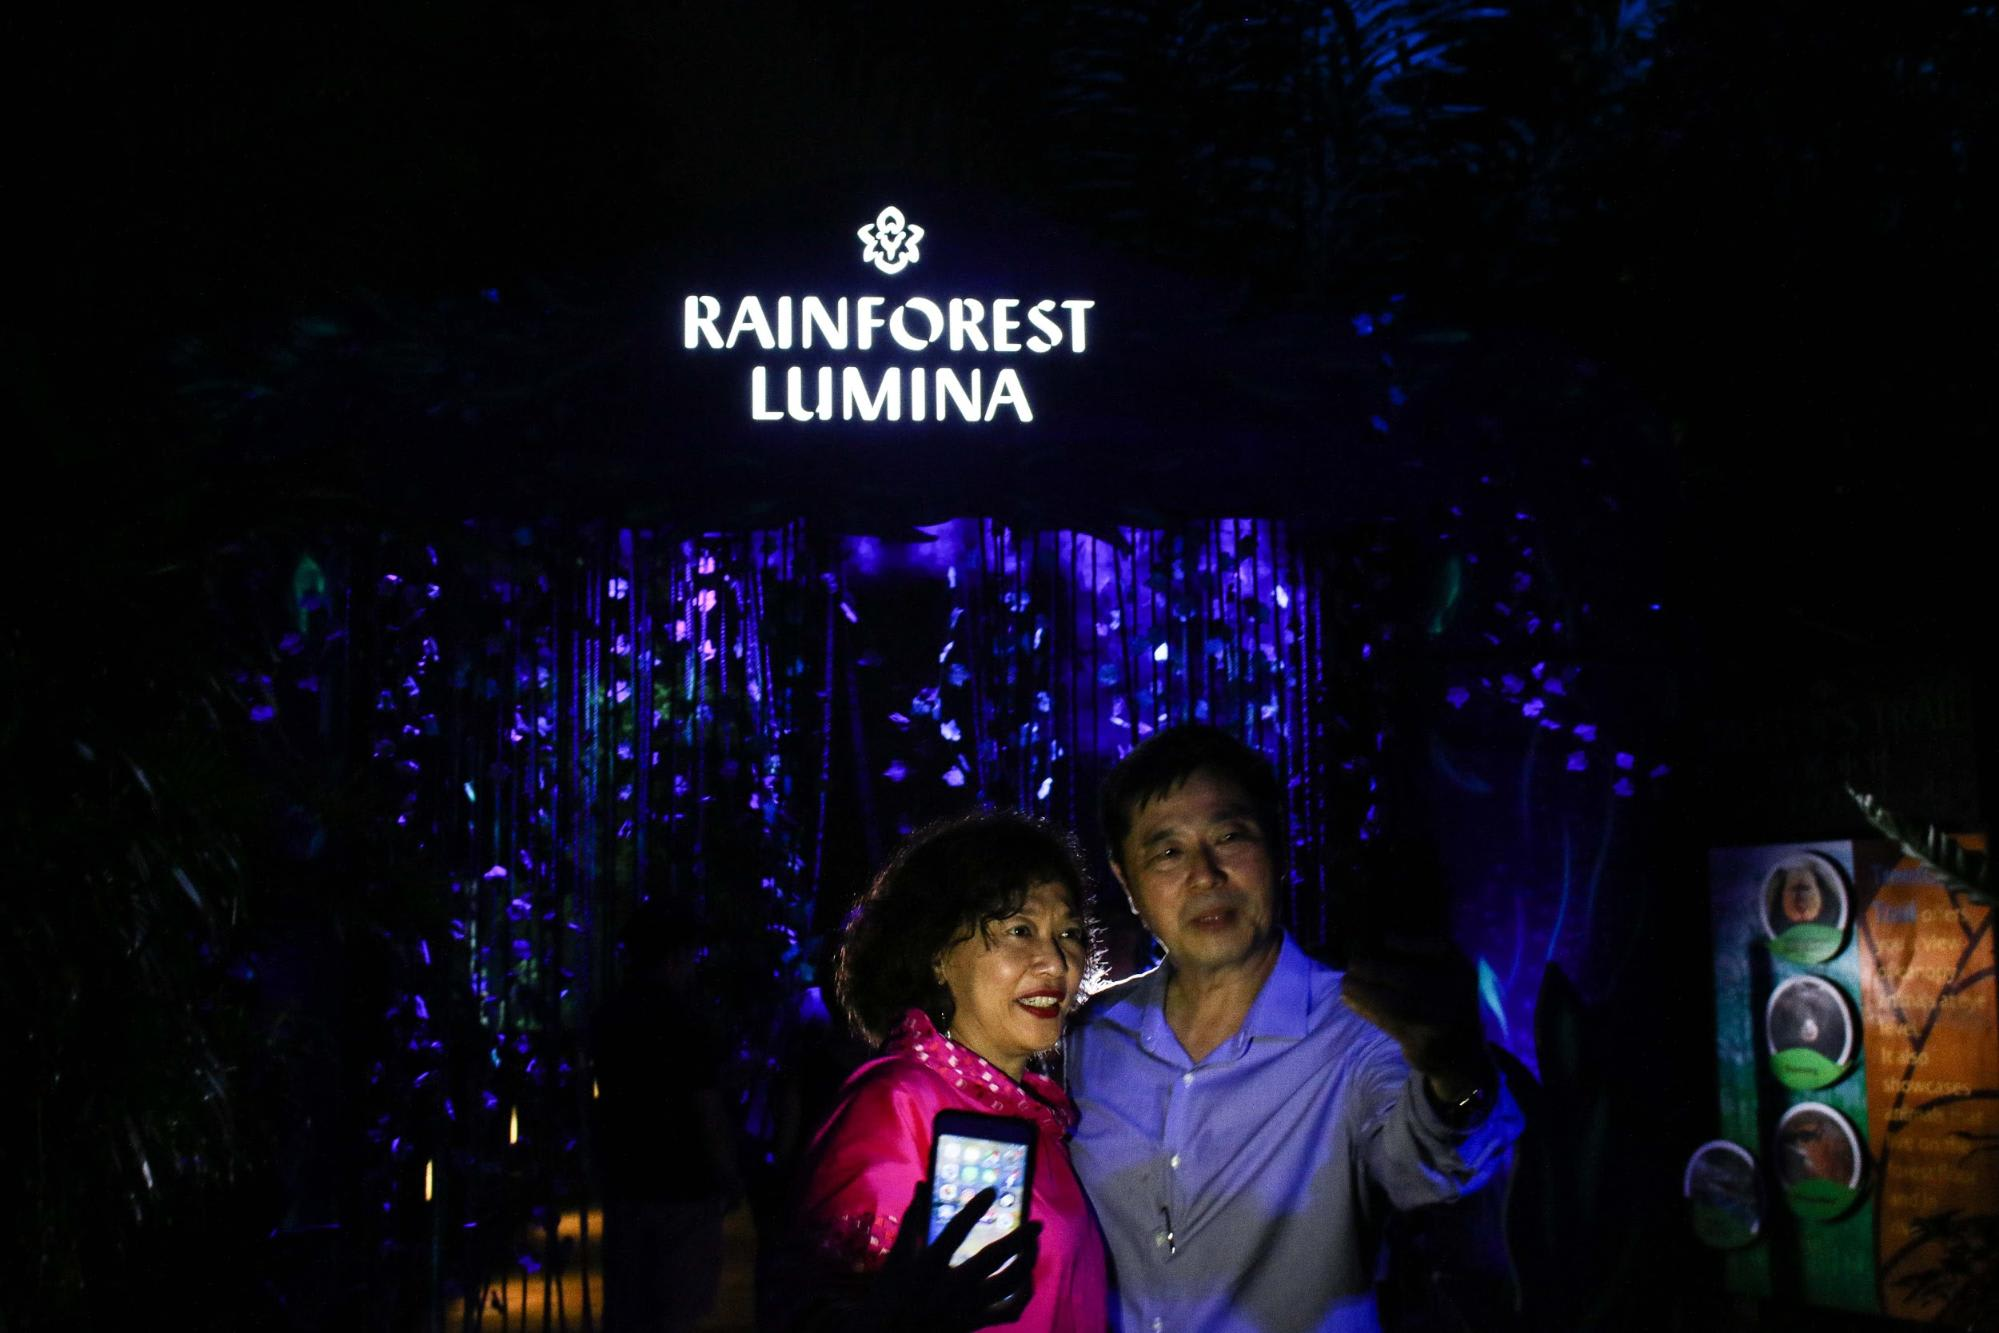 Rainforest Lumina The Arch Singapore Zoo